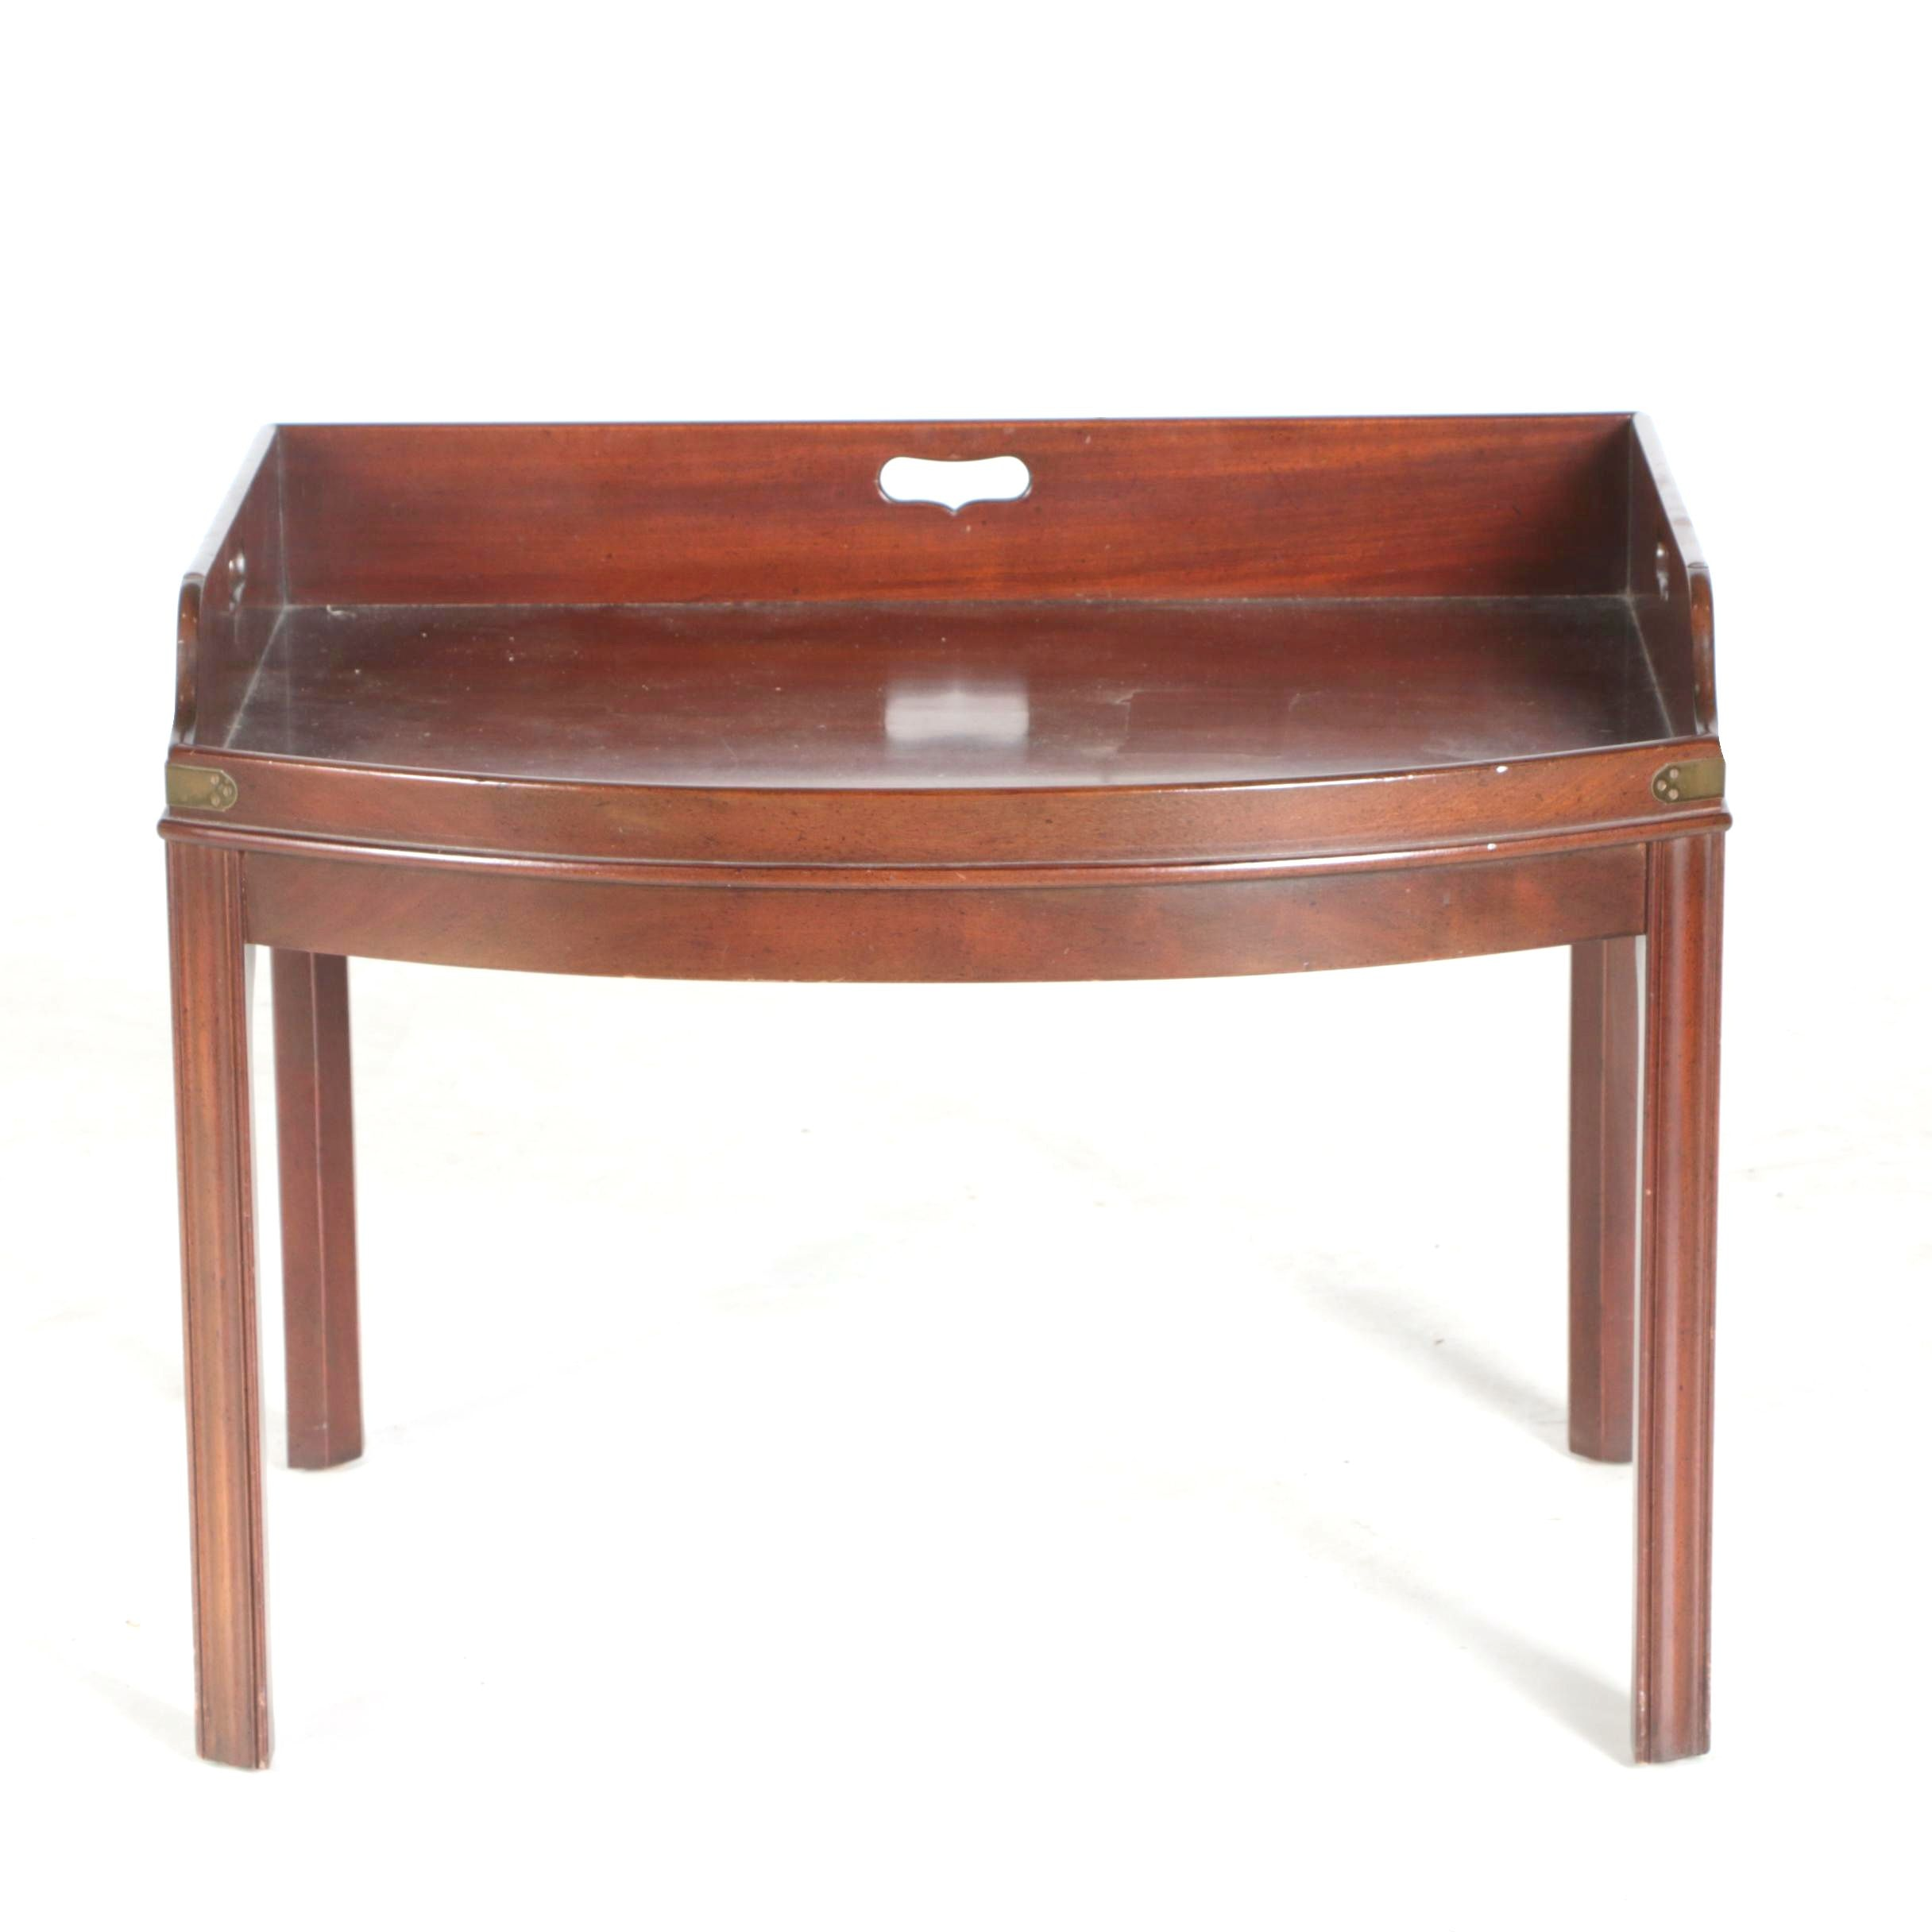 Vintage Federal Style Coffee Table by Kittinger